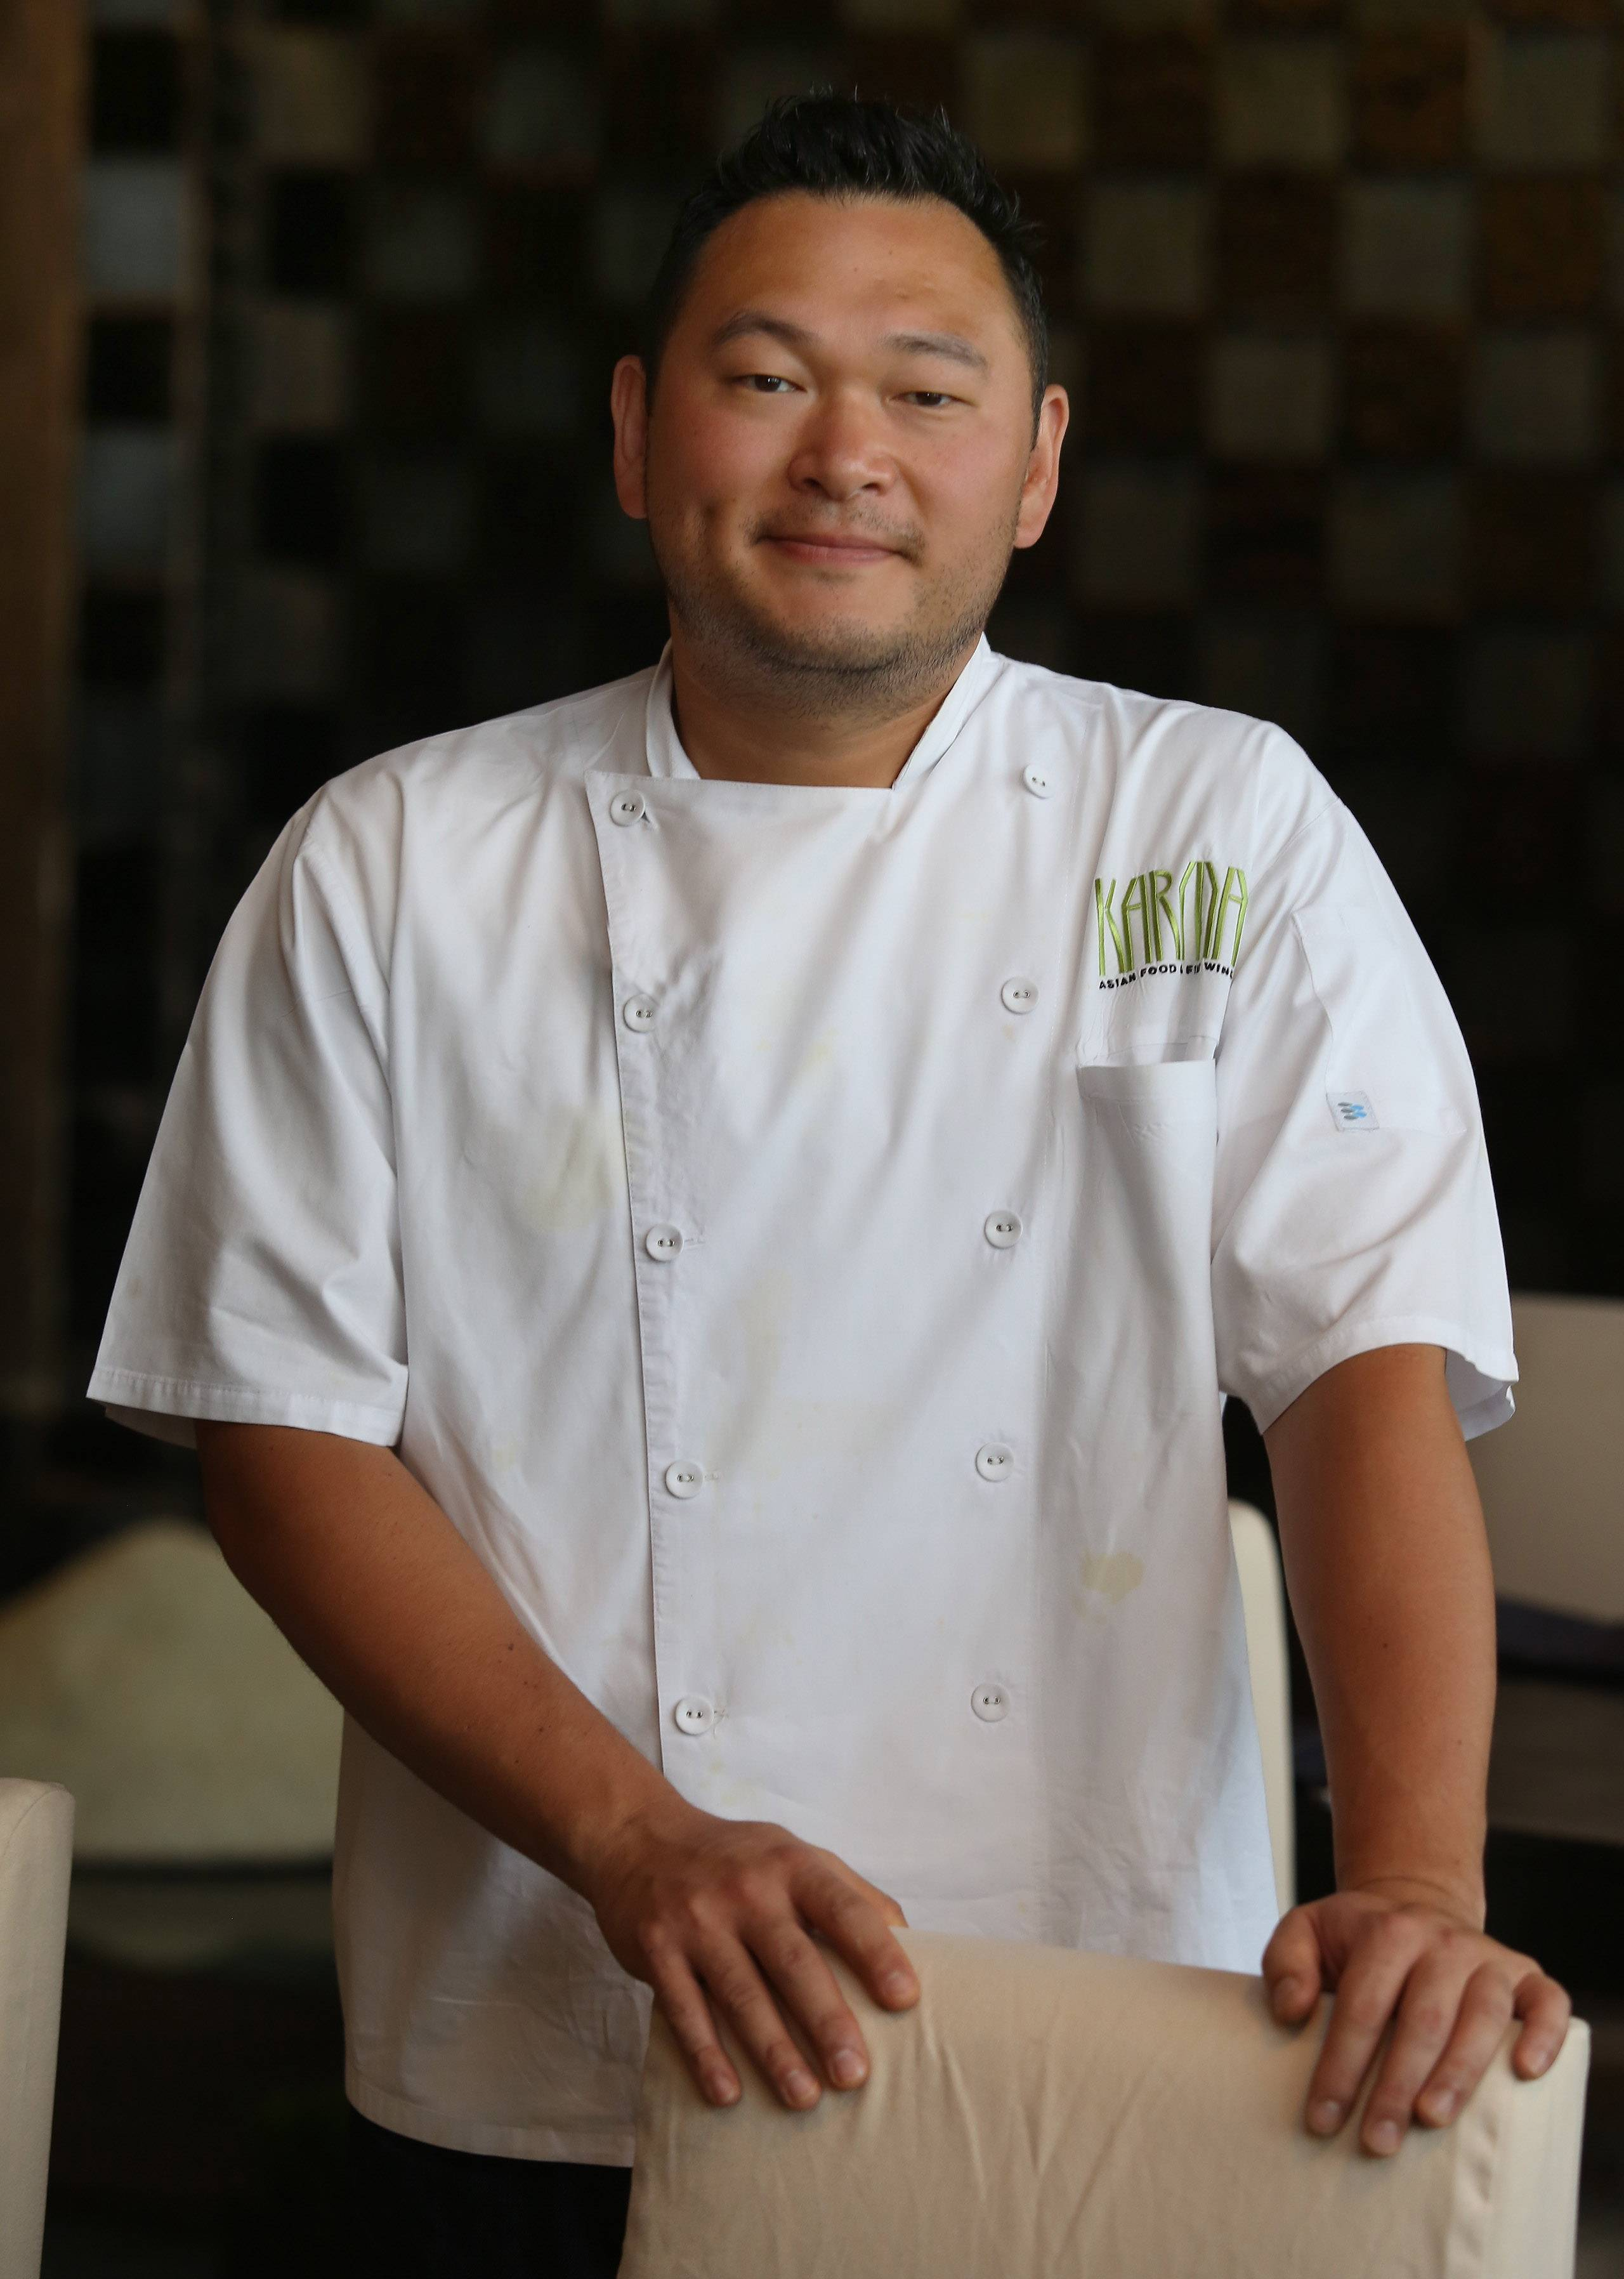 Chef Paul Choi joined Karma as executive chef earlier this year and has upheld the restaurant's reputation for well-crafted Asian-fusion cuisine.